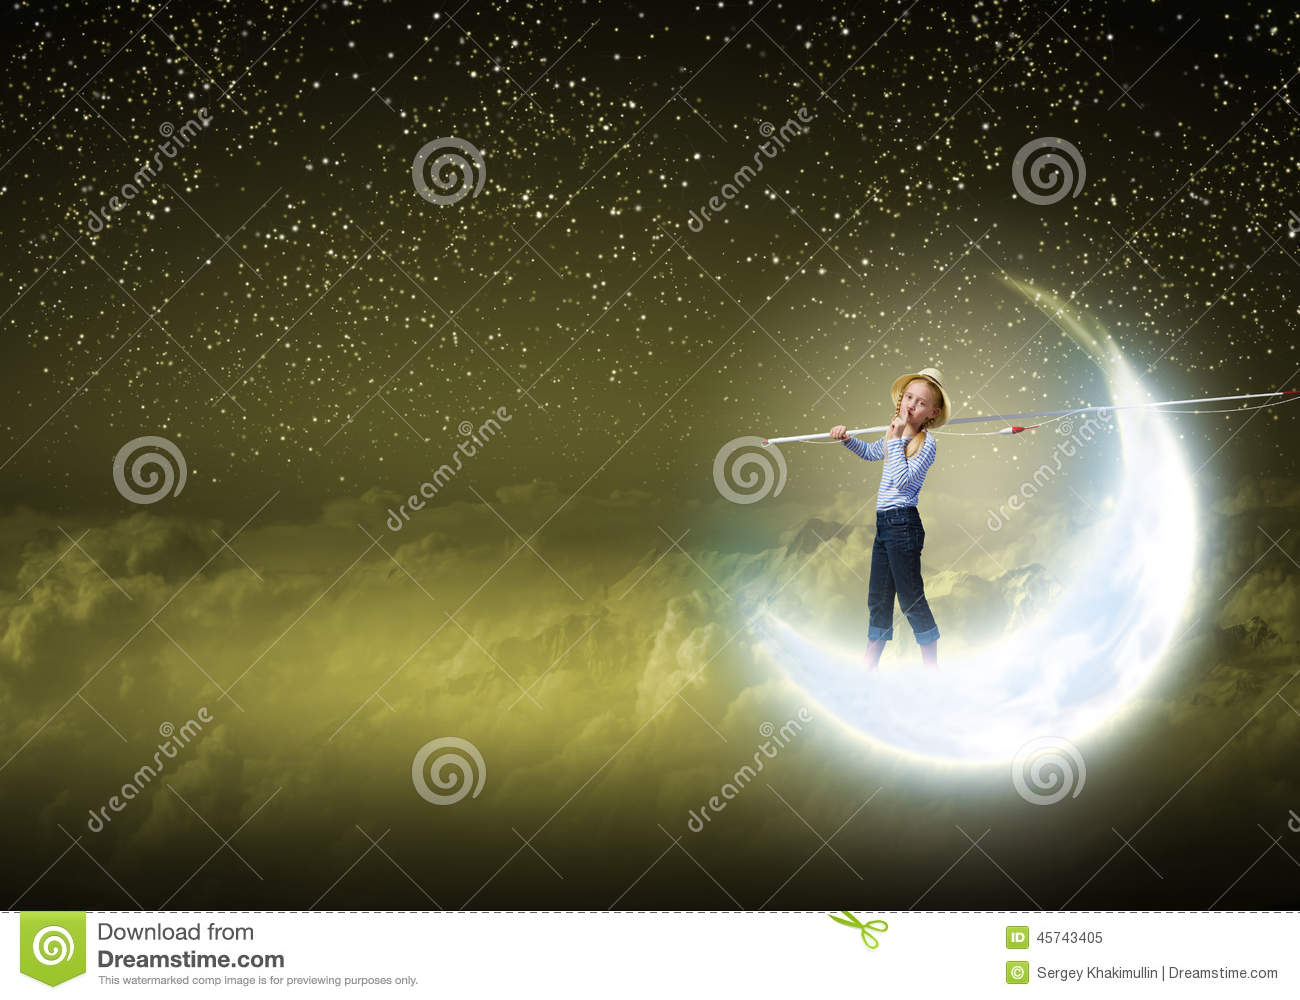 Kids at night with moon royalty free stock photography image - Royalty Free Stock Photo Kid Fisherman Stock Photo